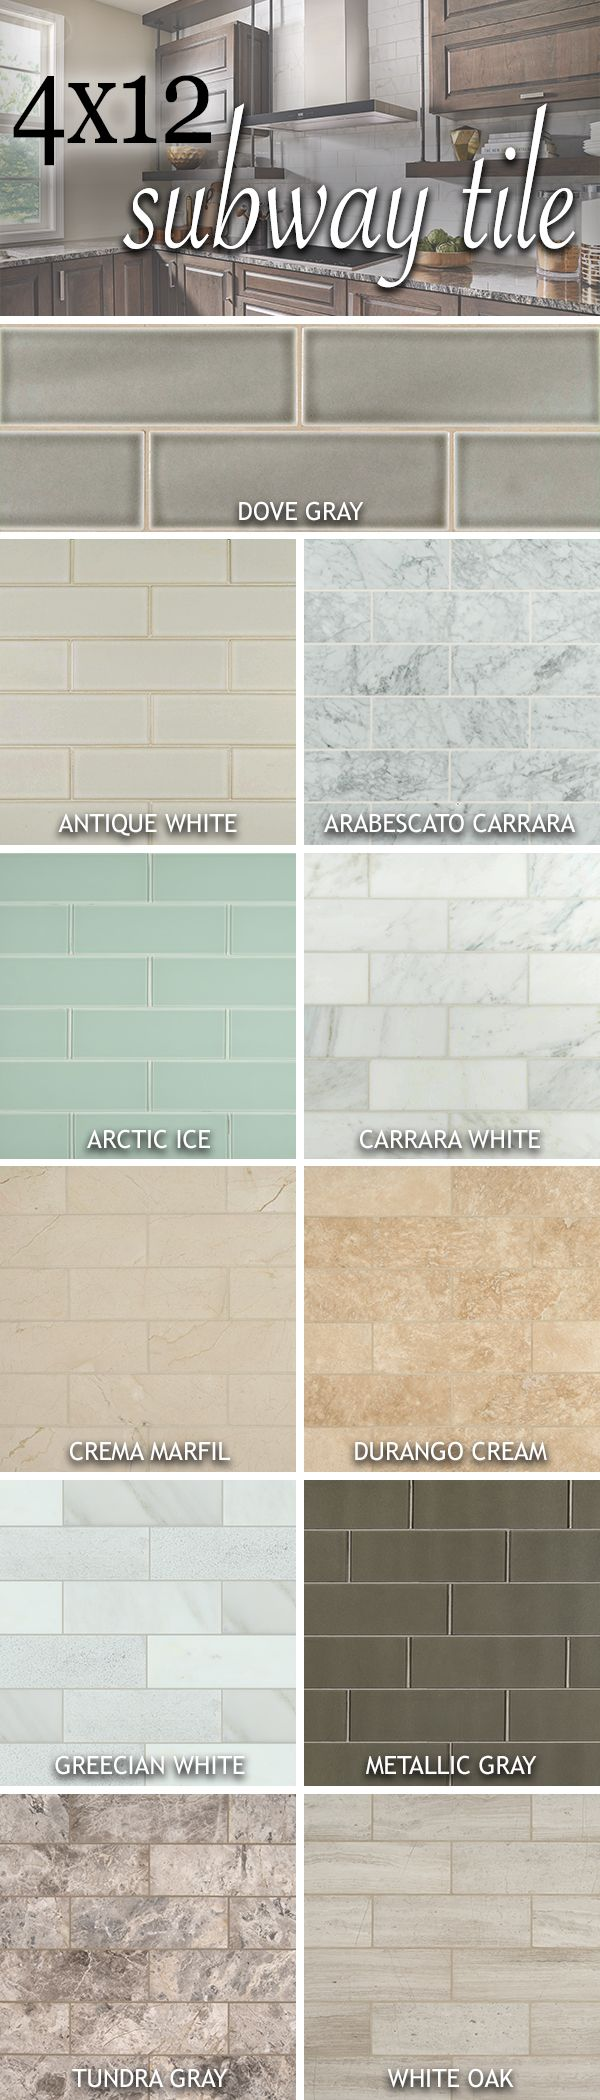 Our 4x12 tiles are giving new life to classic subway! Featuring handcrafted looks, dreamy whites, warm grays, and classic neutrals, our latest oversized subway additions will create the perfect linear look to glam up your space.